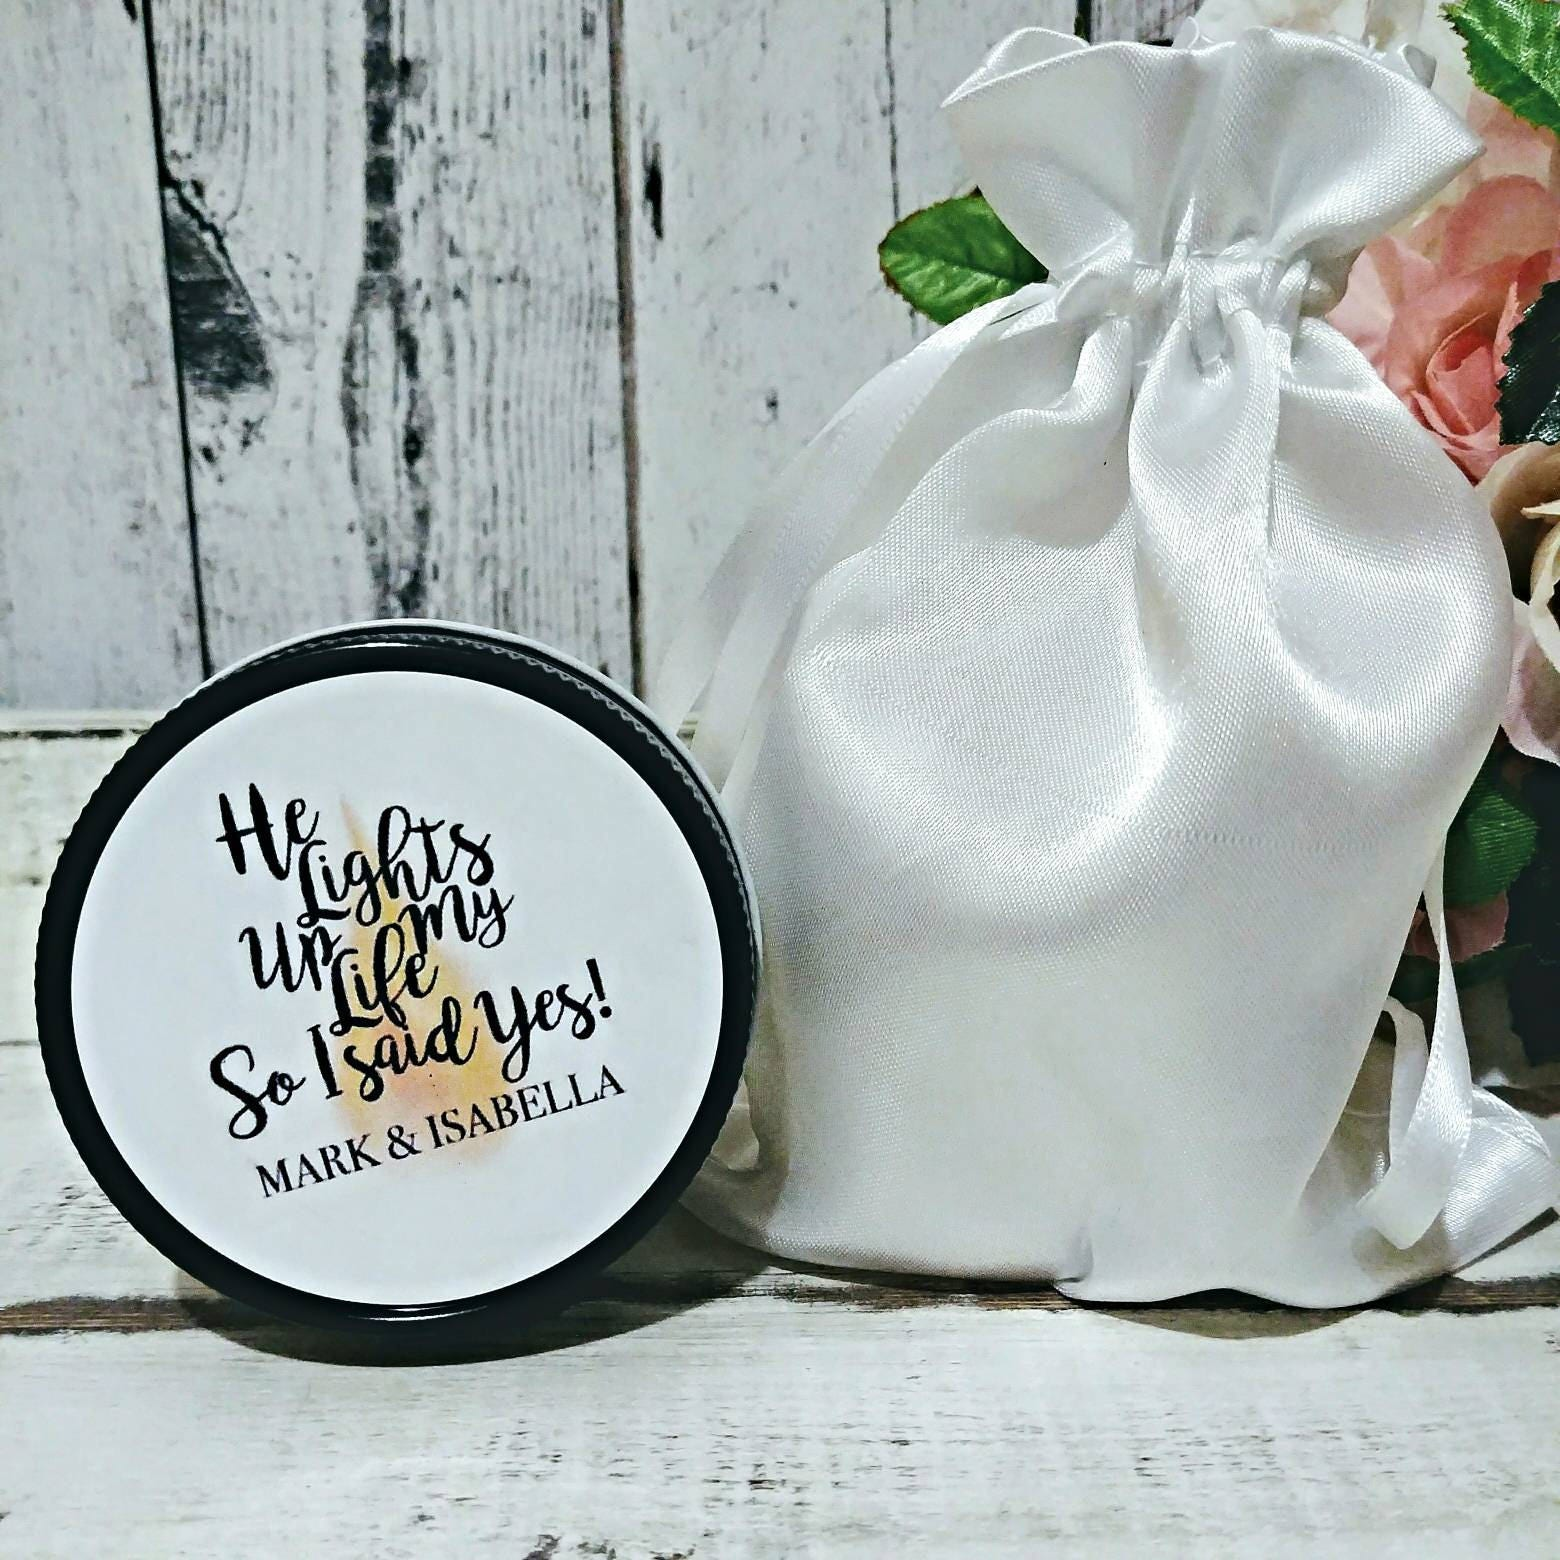 Engagement Party Favors - Engagement Favors - Bridal Party Favors ...